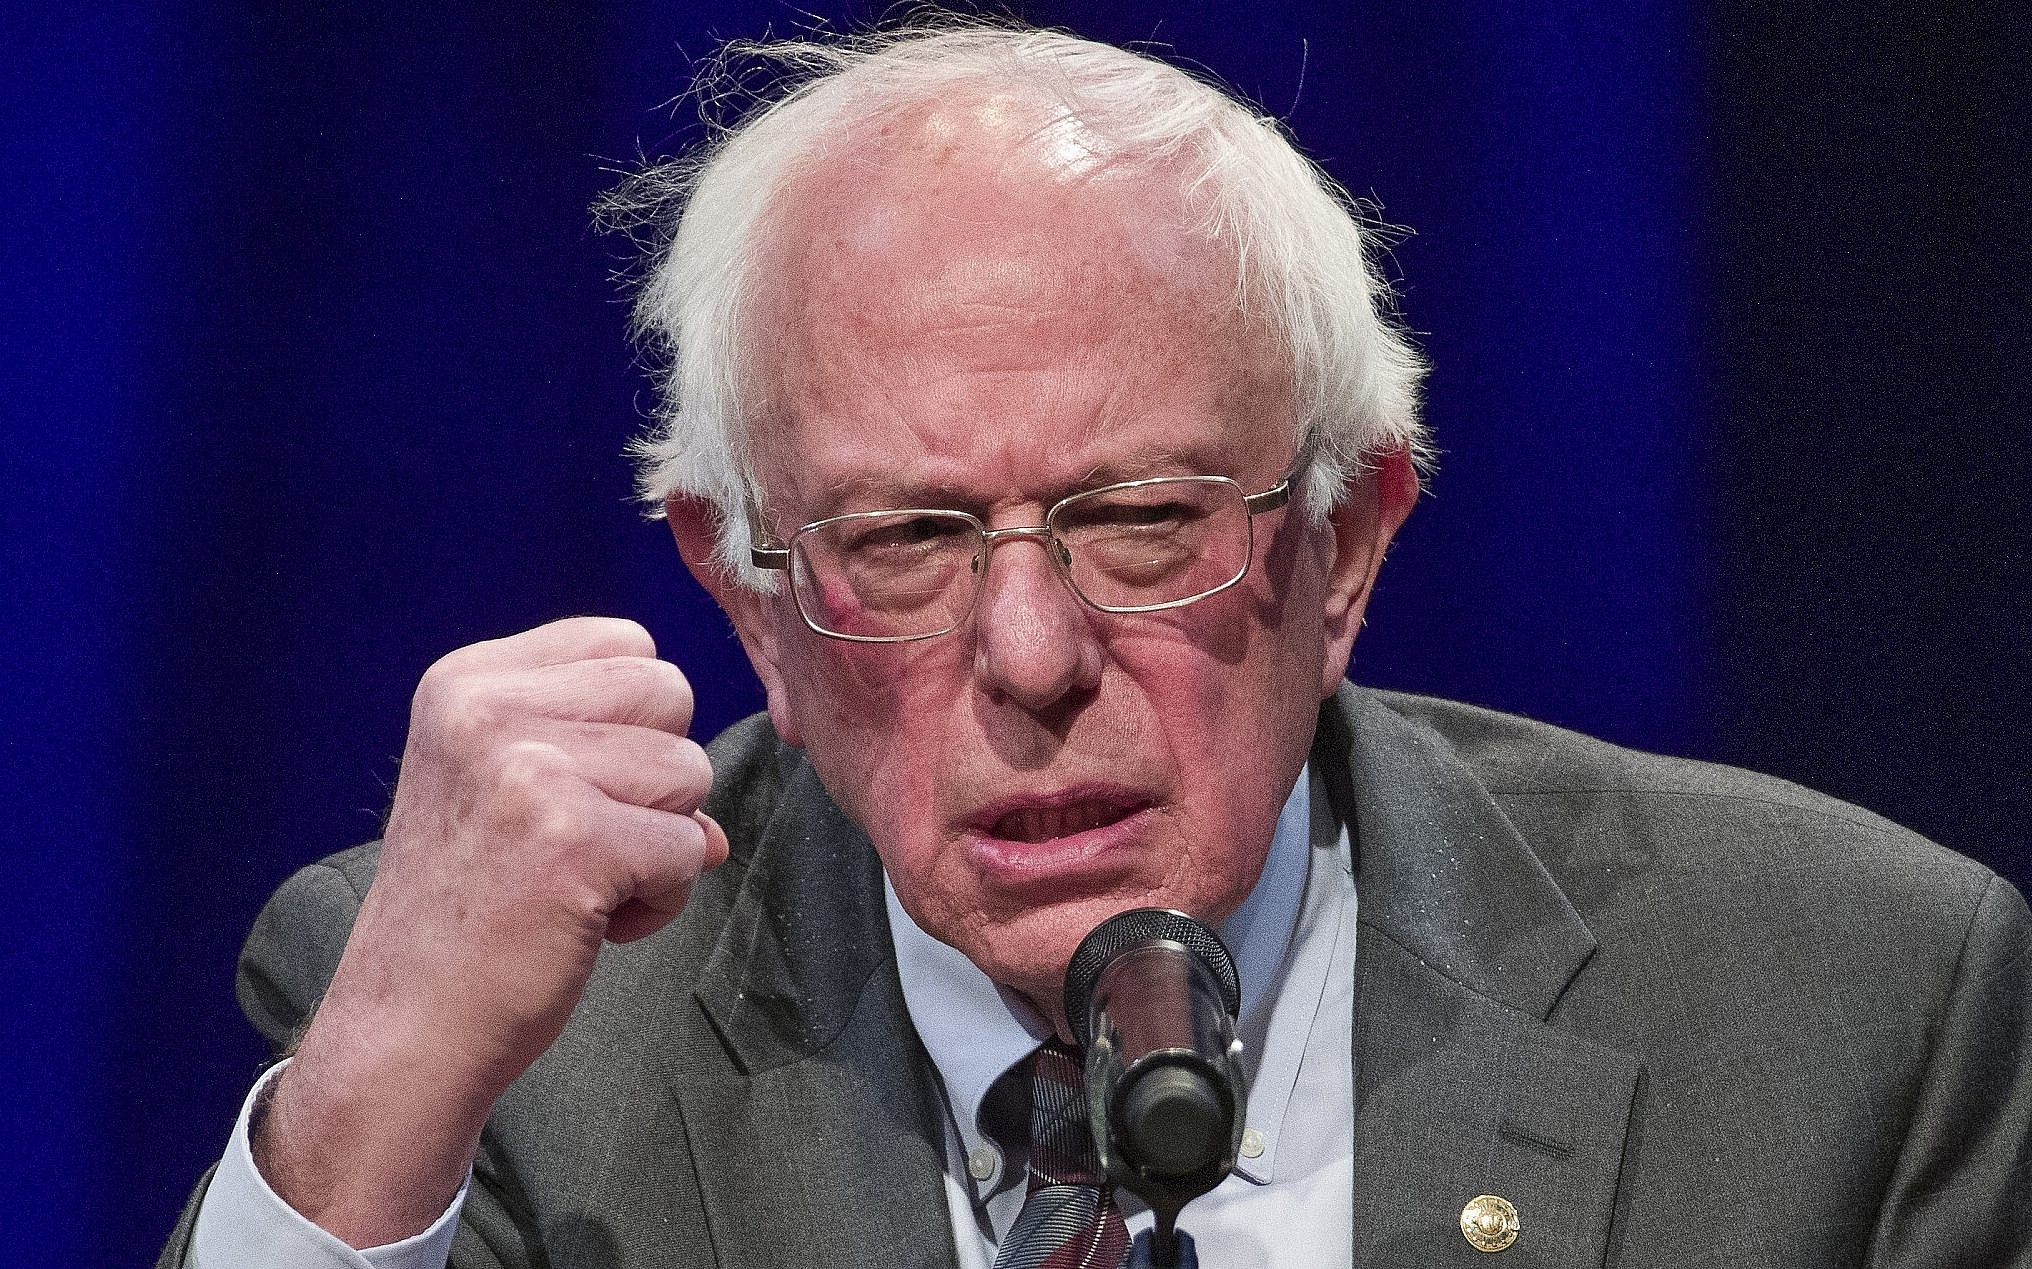 Bernie Sanders apologizes to women harassed during his campaign